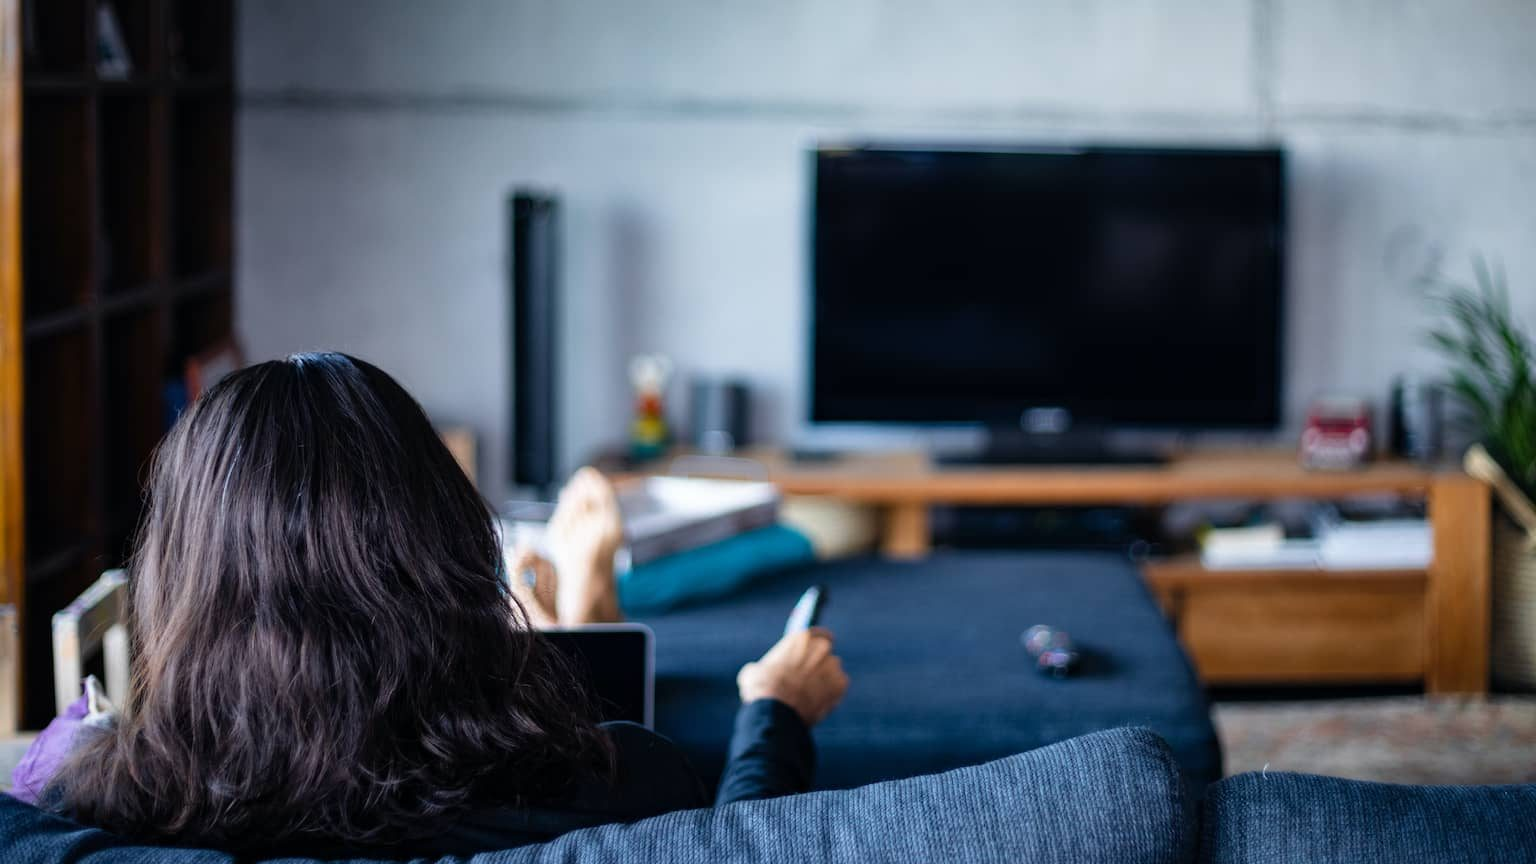 Woman using an air mouse to watch TV